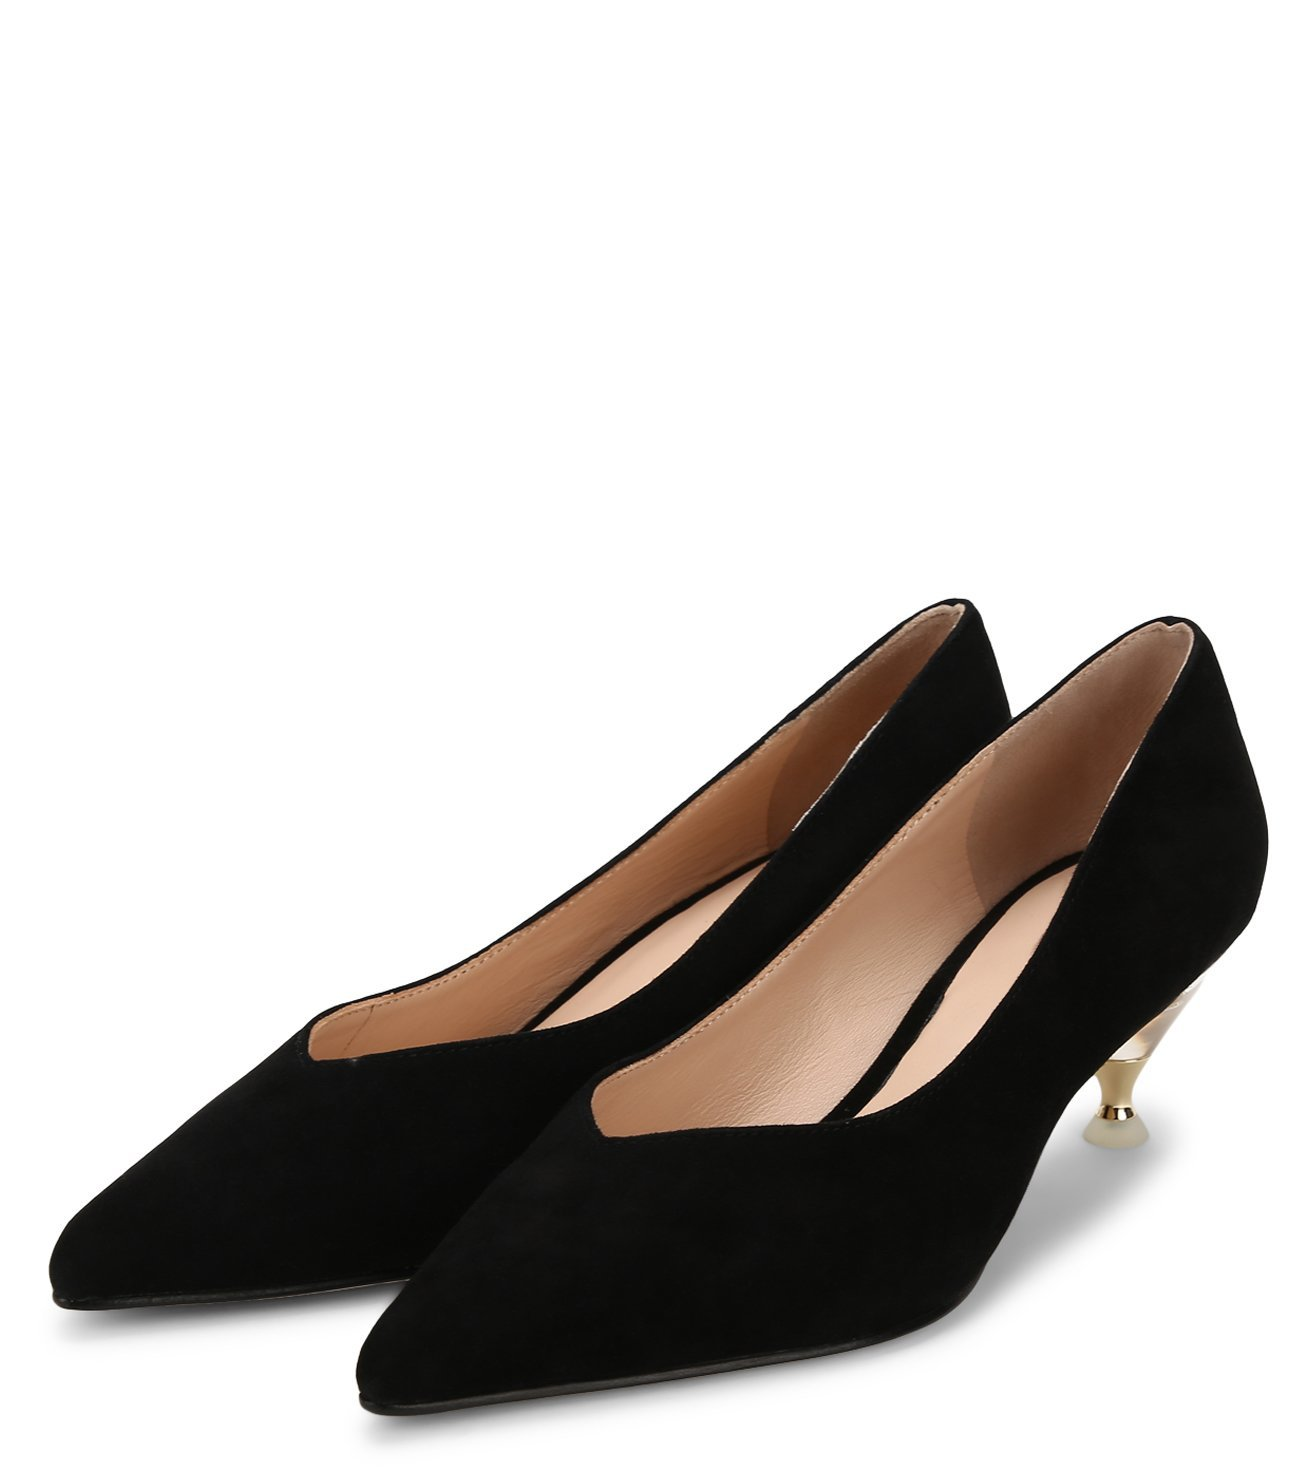 Buy Kate Spade Black Coco Studded Pumps